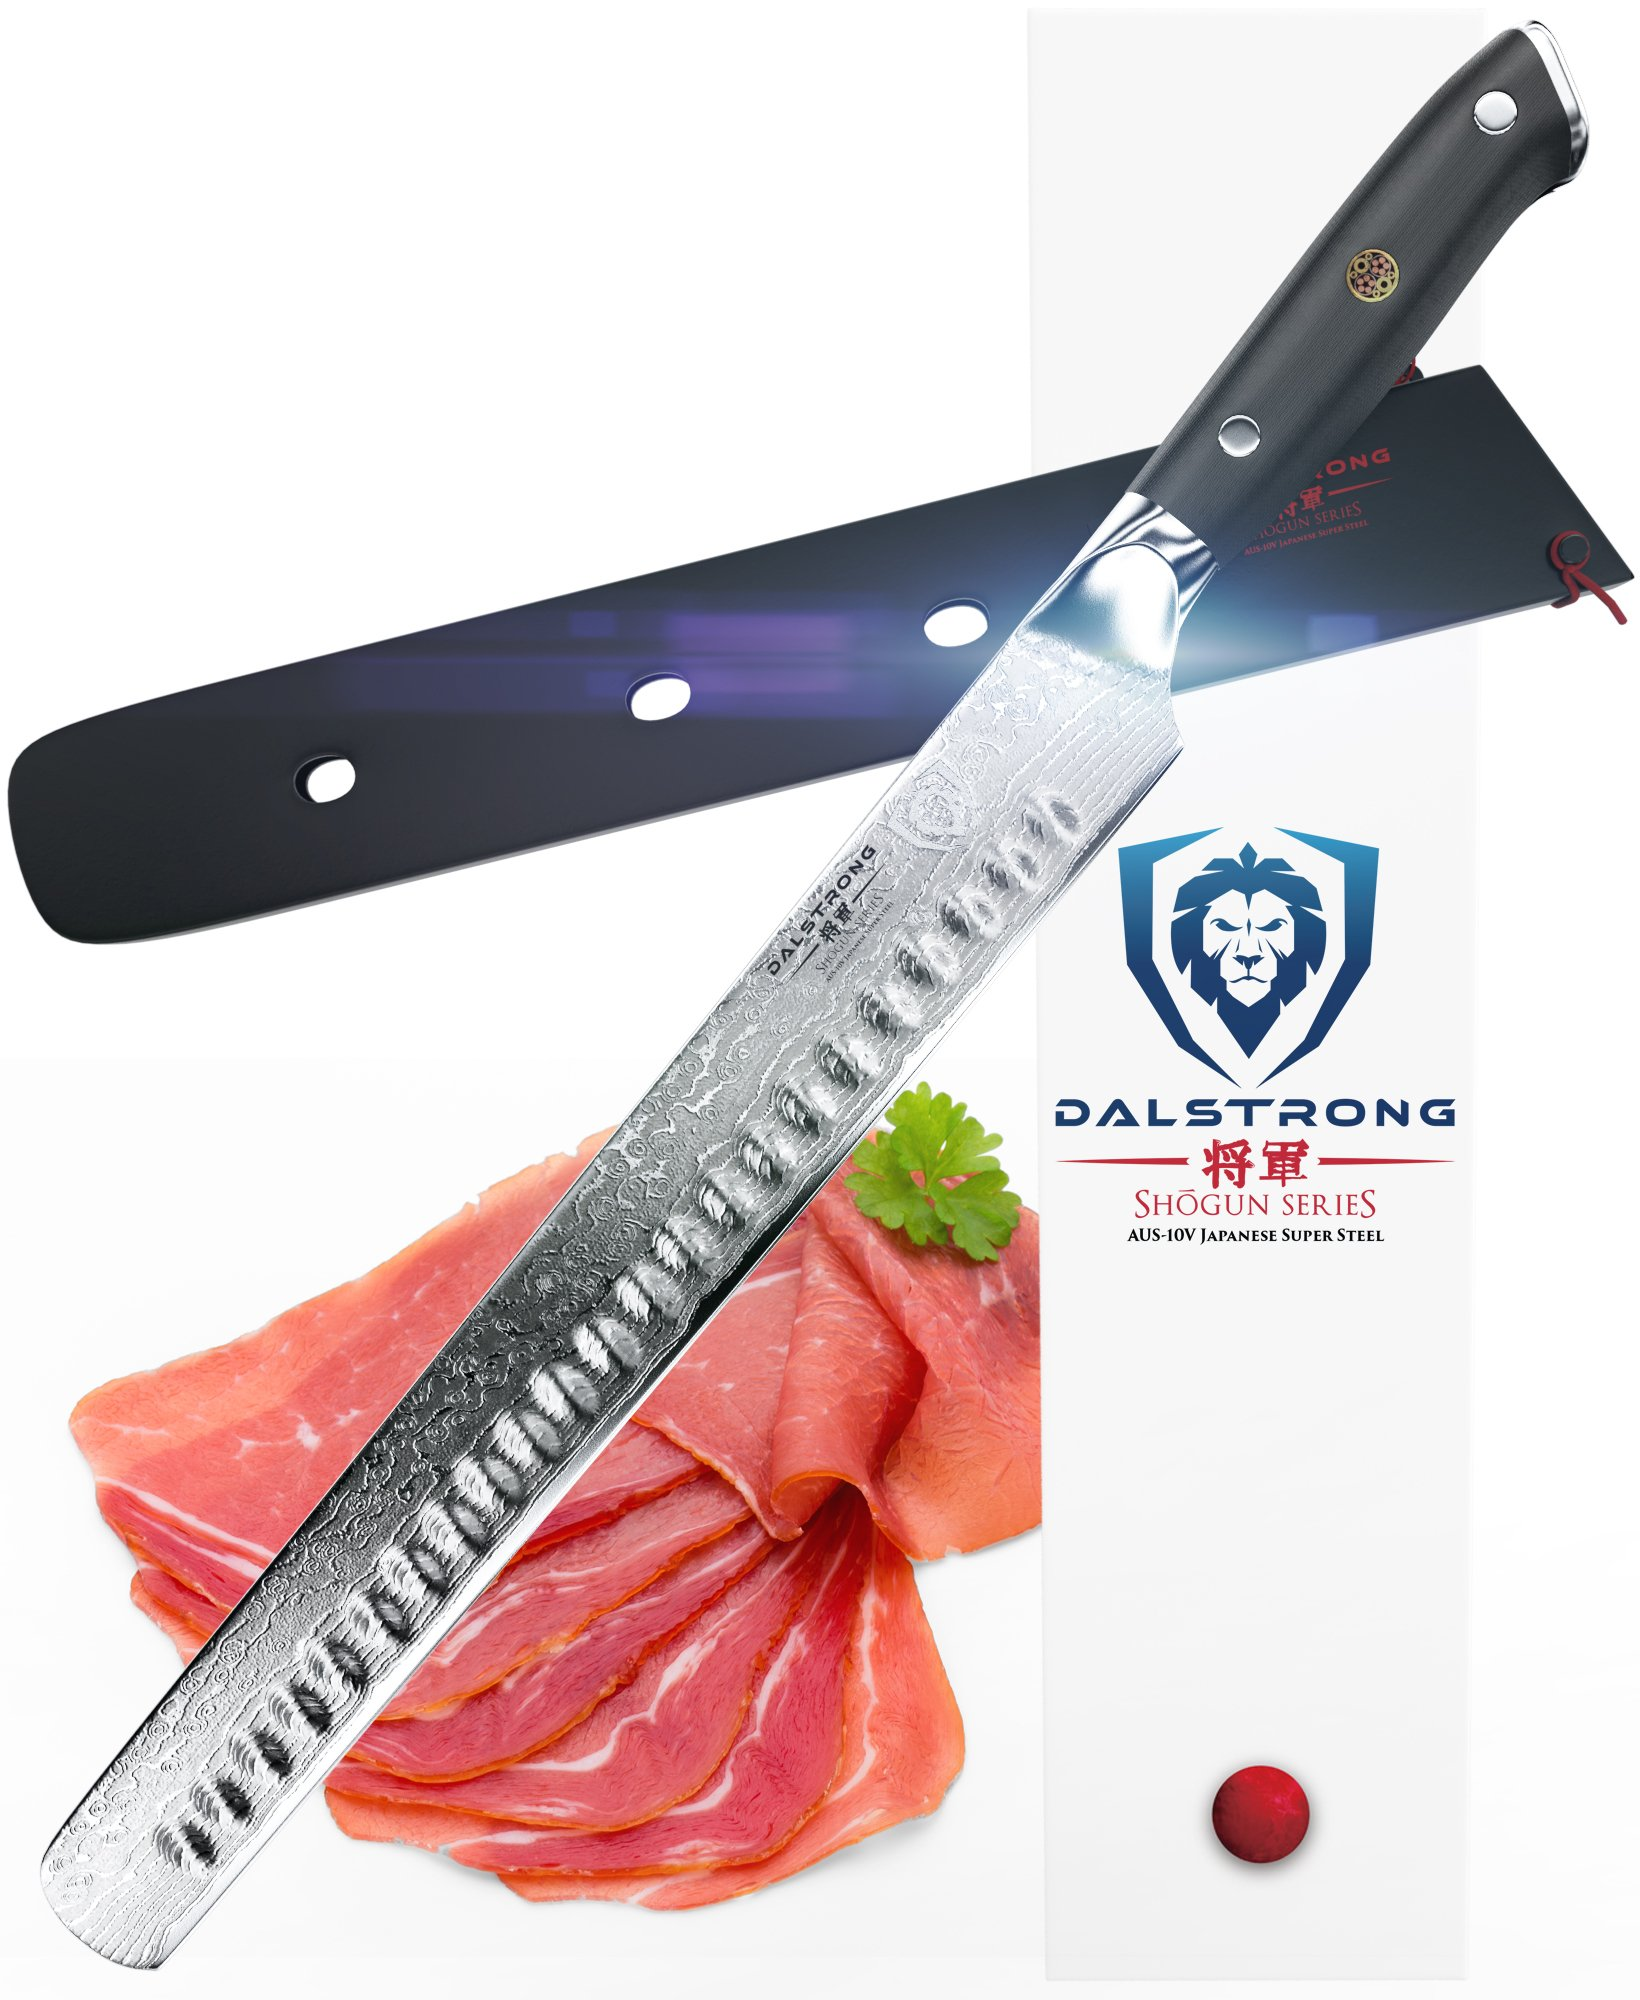 DALSTRONG Slicing Carving Knife - 12'' Granton Edge - Shogun Series - VG10 - Sheath